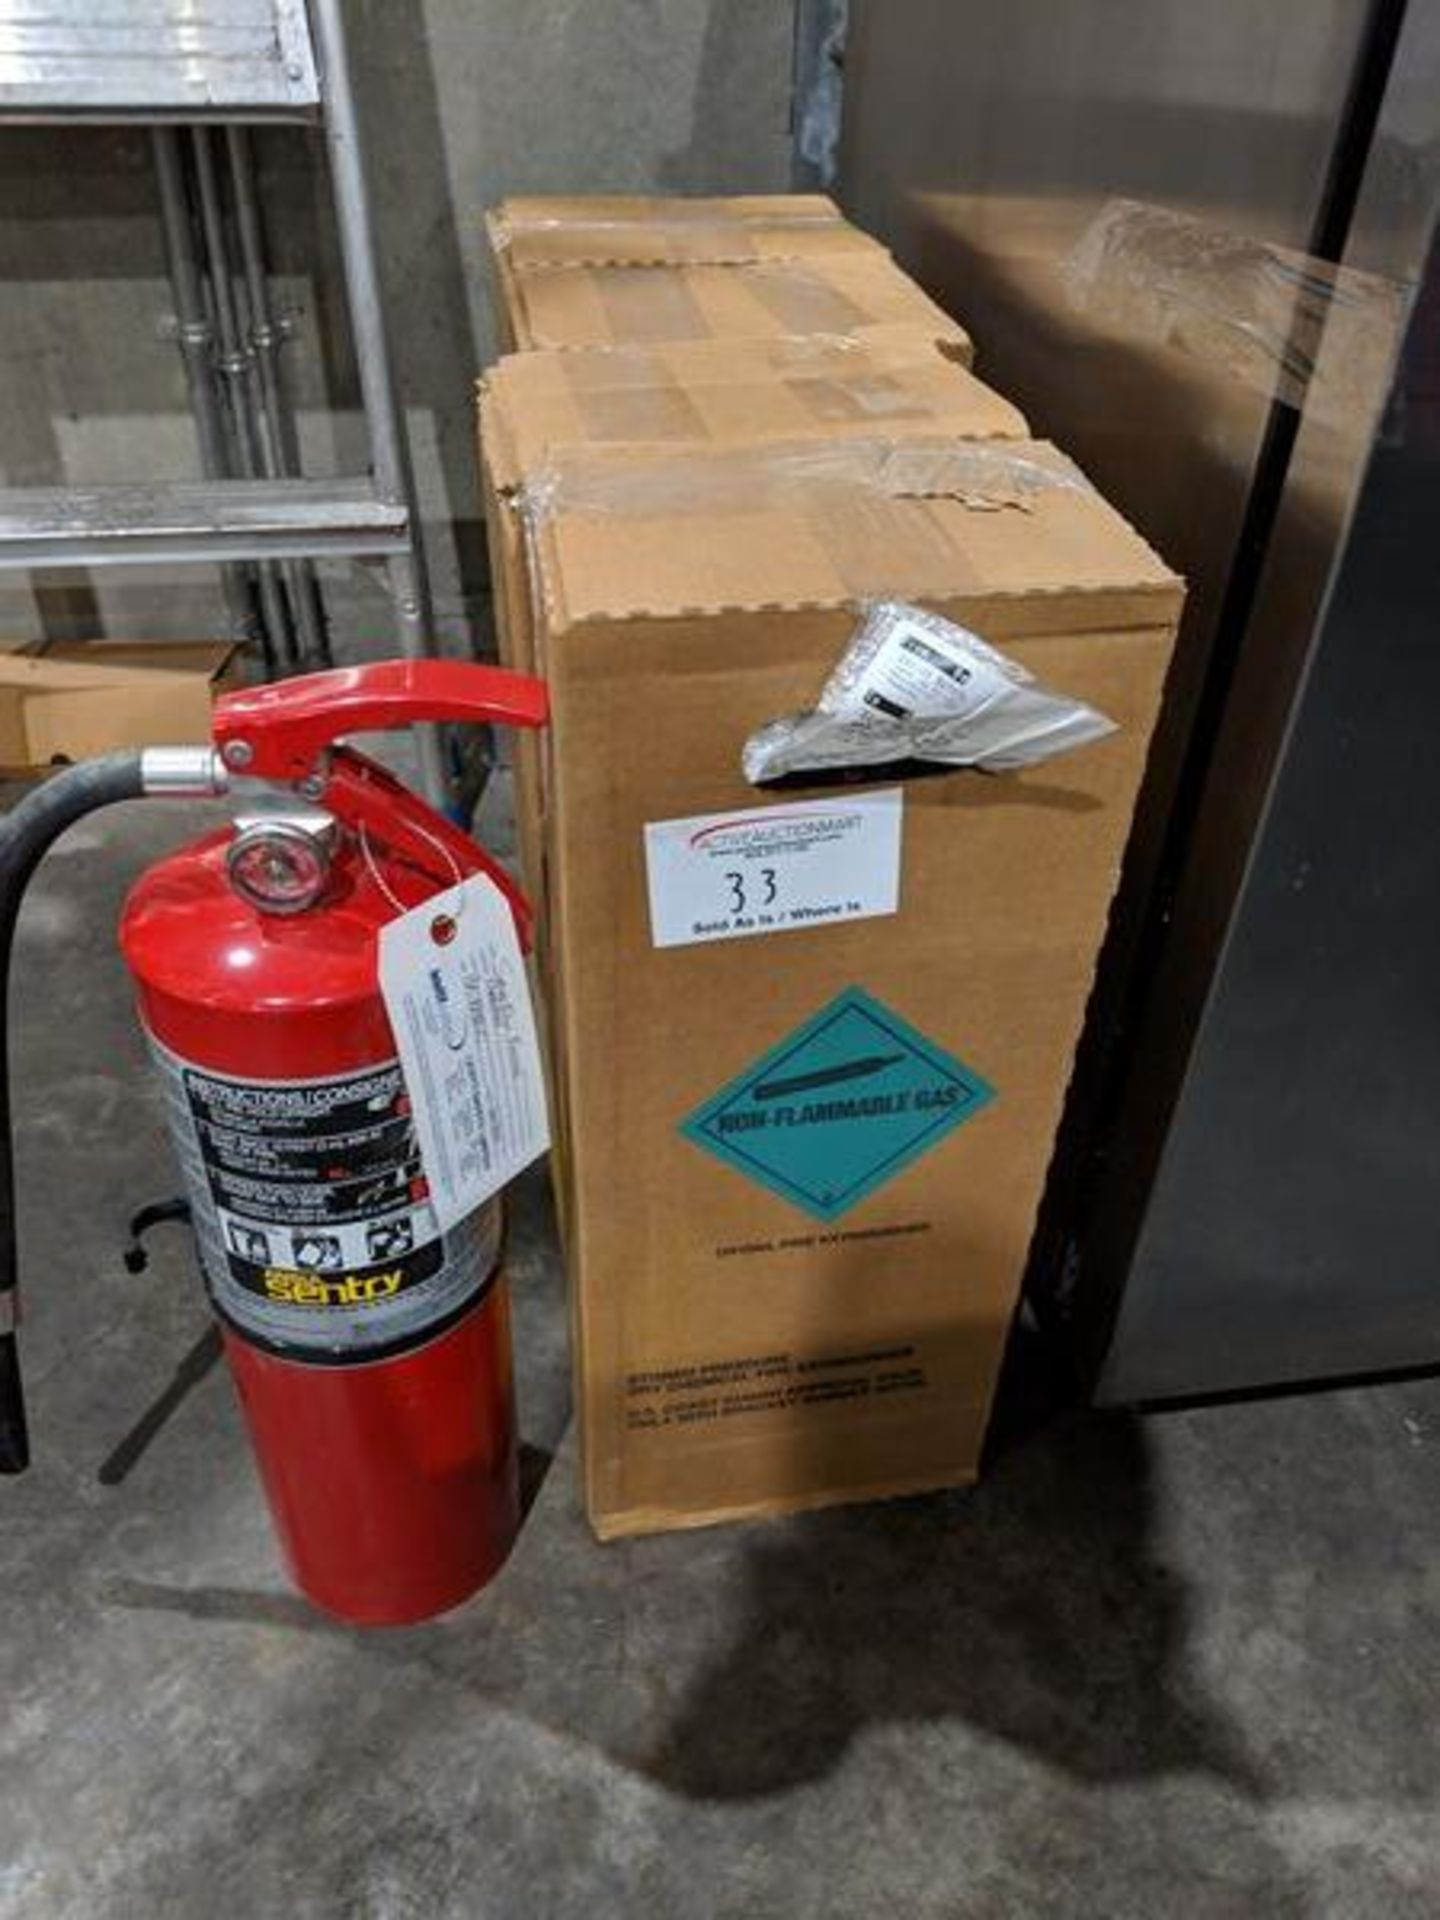 Lot 33 - 4 Ansul New Fire Extinguishers